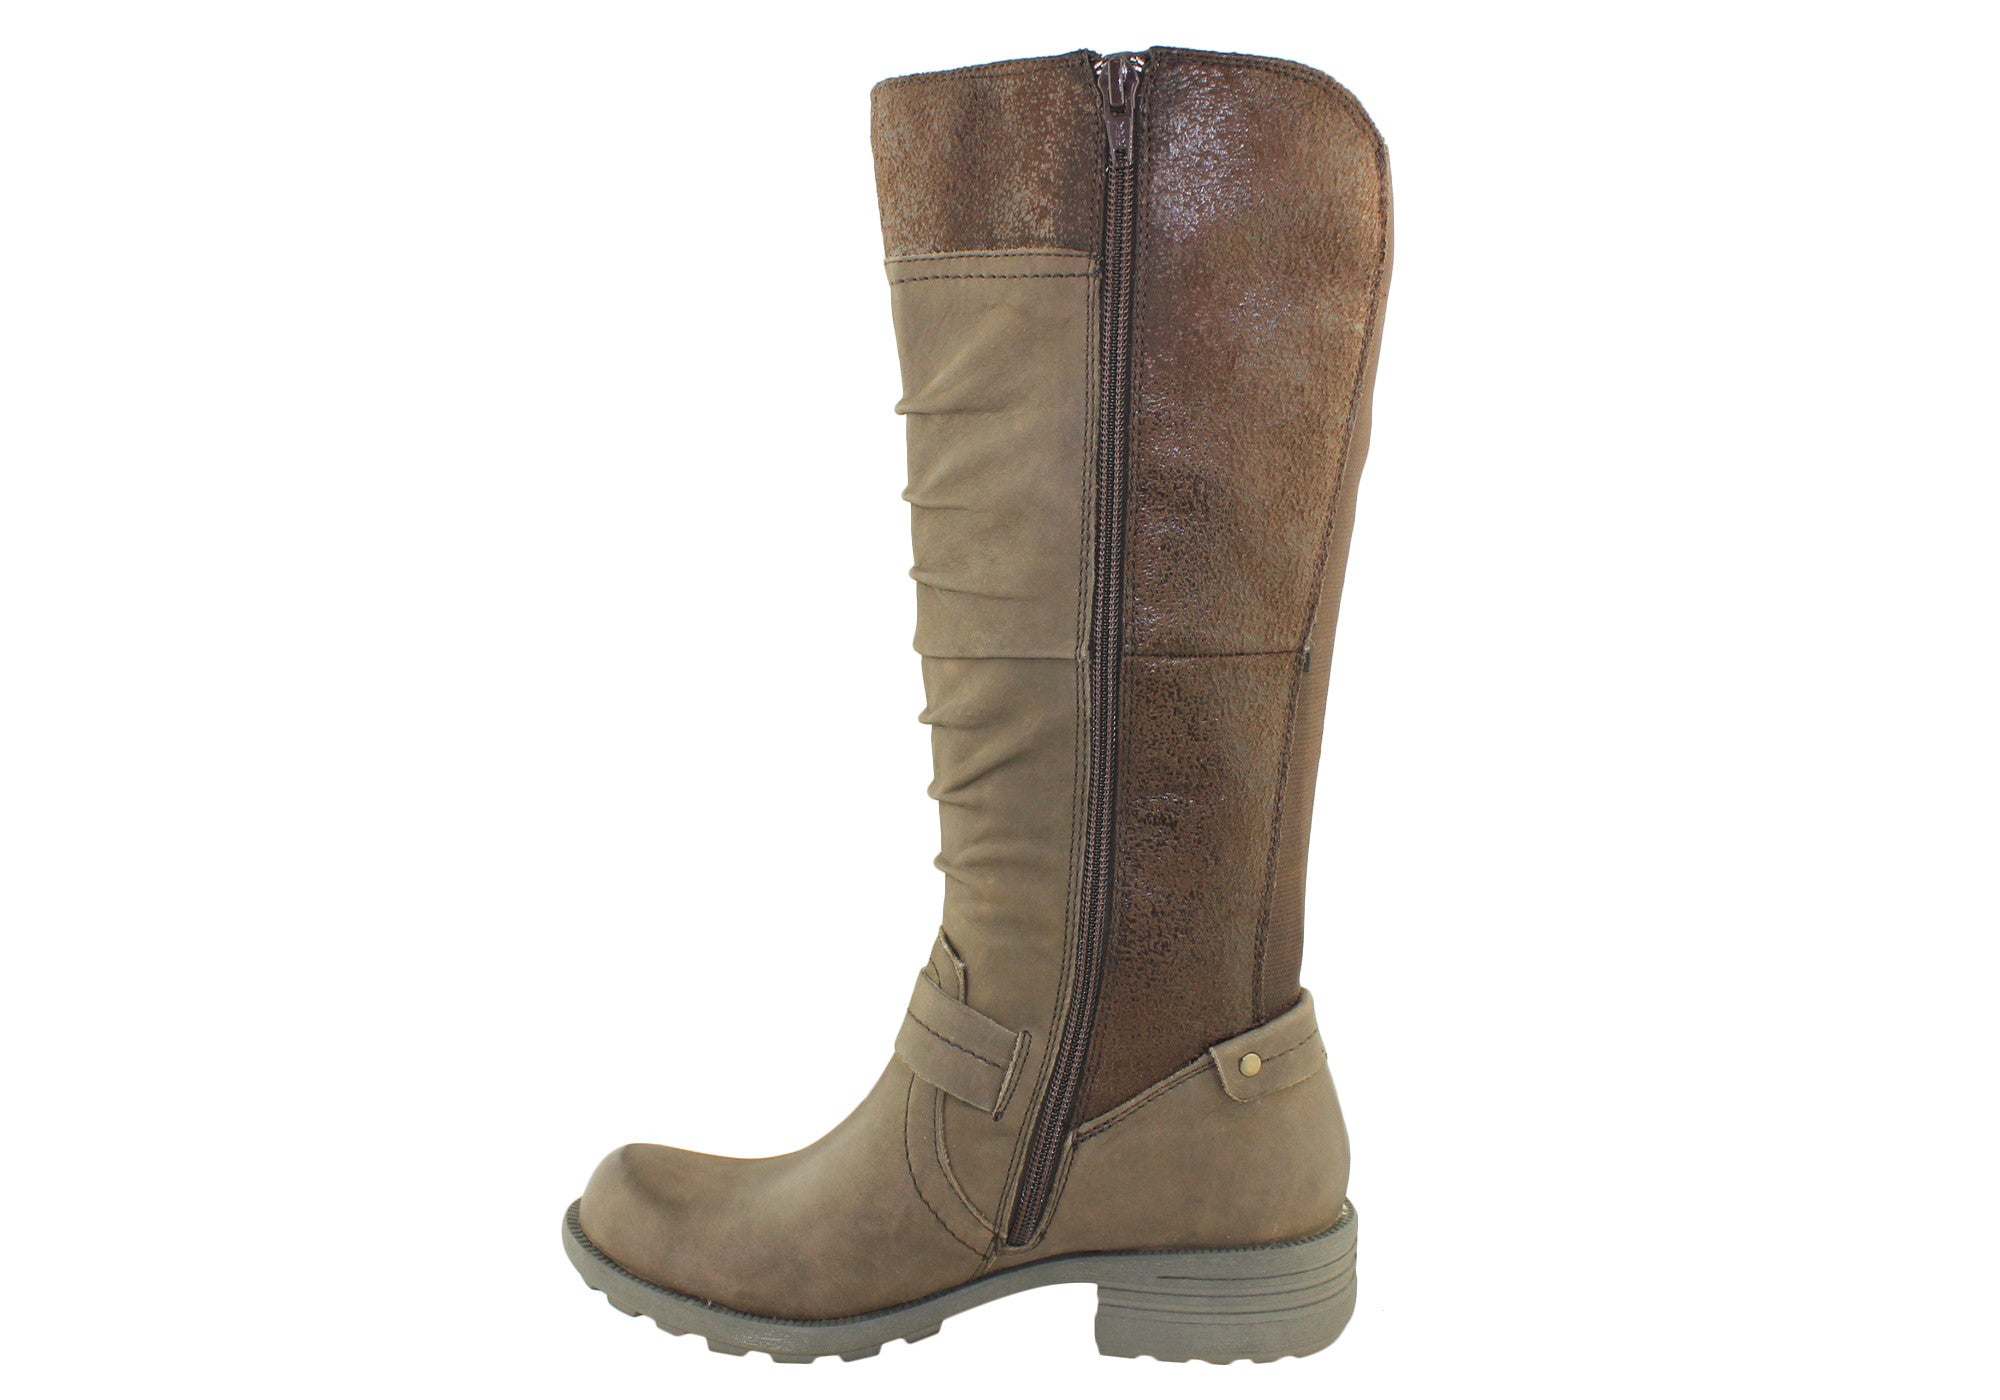 pairs women htm knee combat christine a flat comfortable s comforter for boots original hero boot new side members high